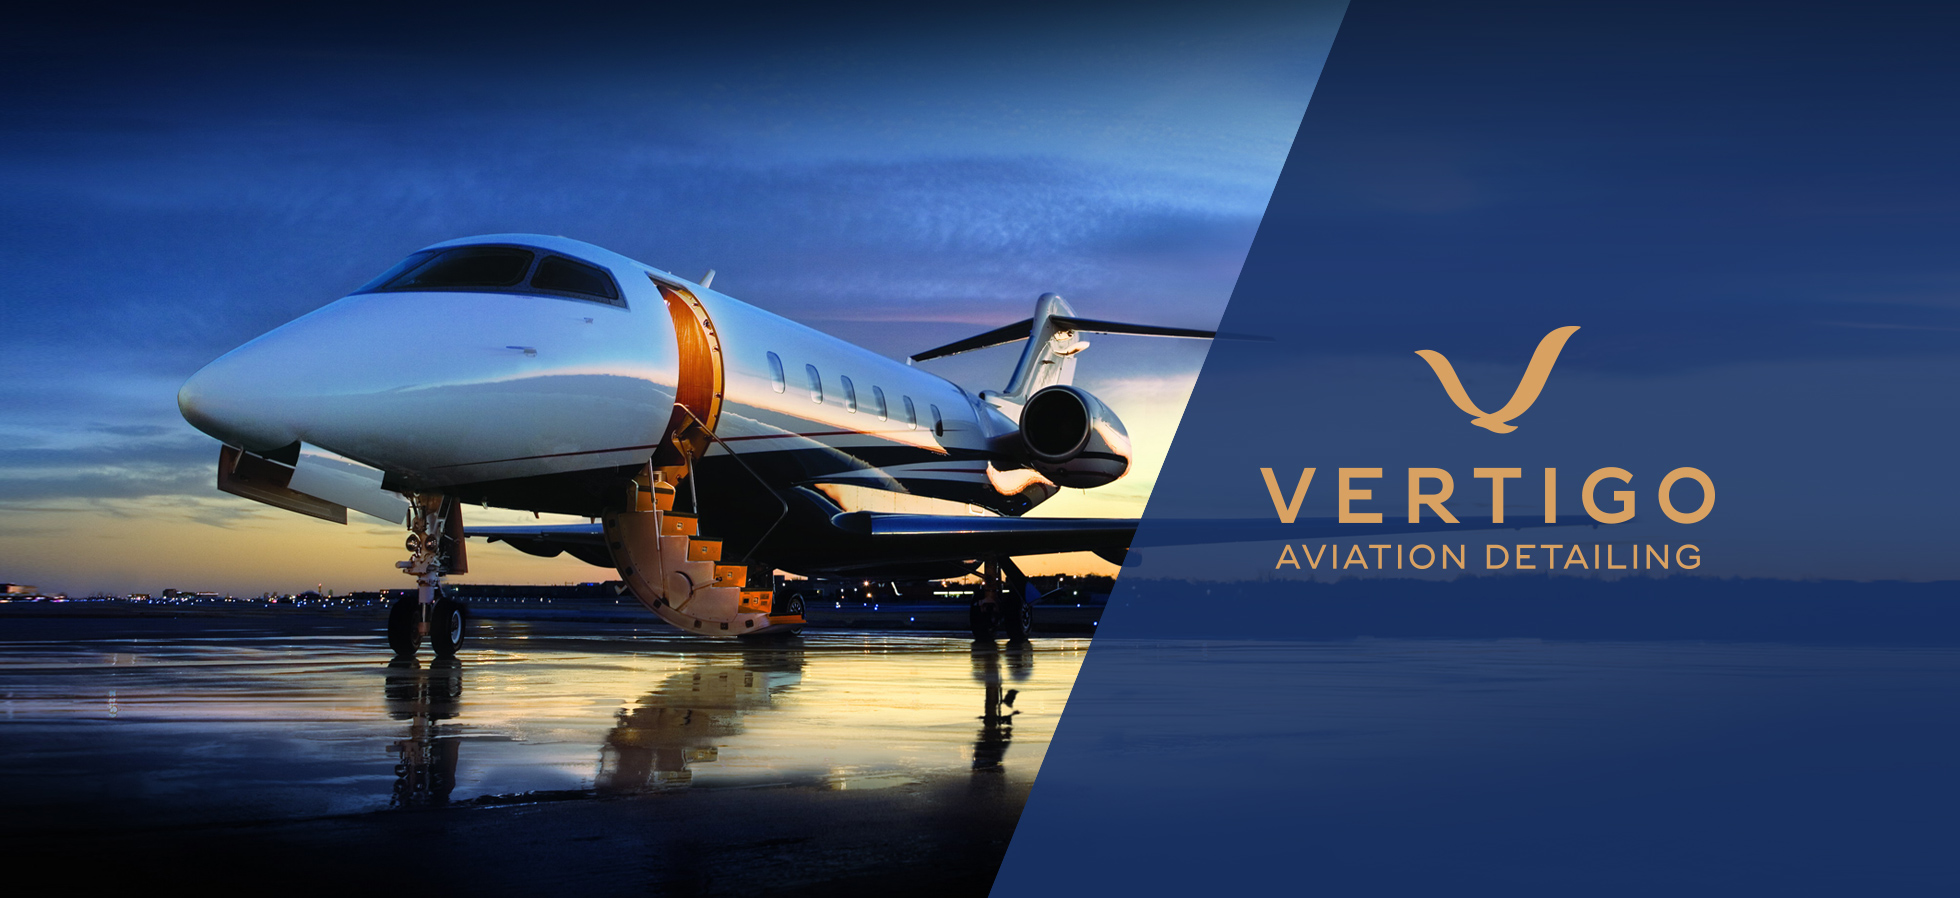 Branding for Vertigo Aviation Detailing Southampton